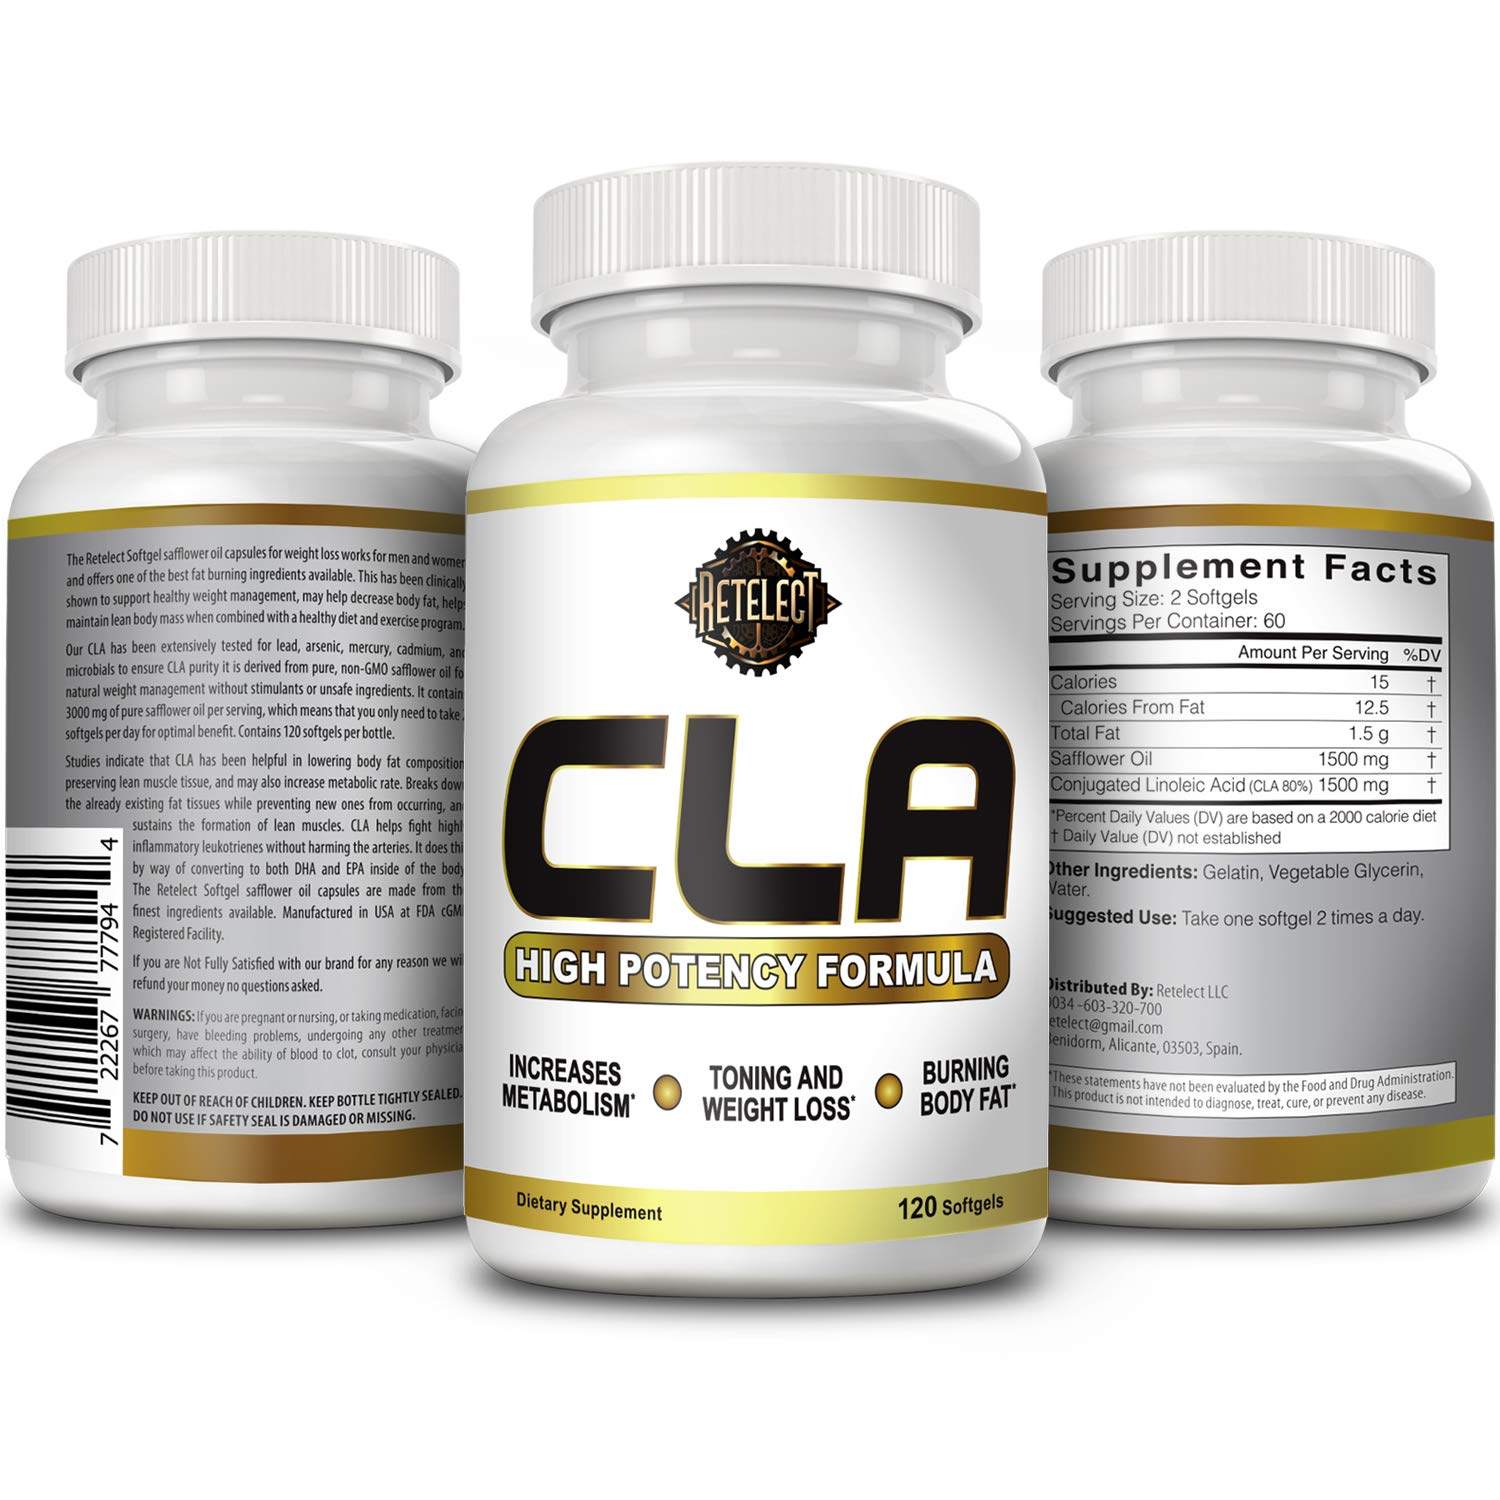 Amazon.com: Retelect Extra Strength Vegan Friendly 1500mg CLA (Conjugated Linoleic Acid) Weight Loss and Fat Burner Softgels Made from Safflower Seeds ...